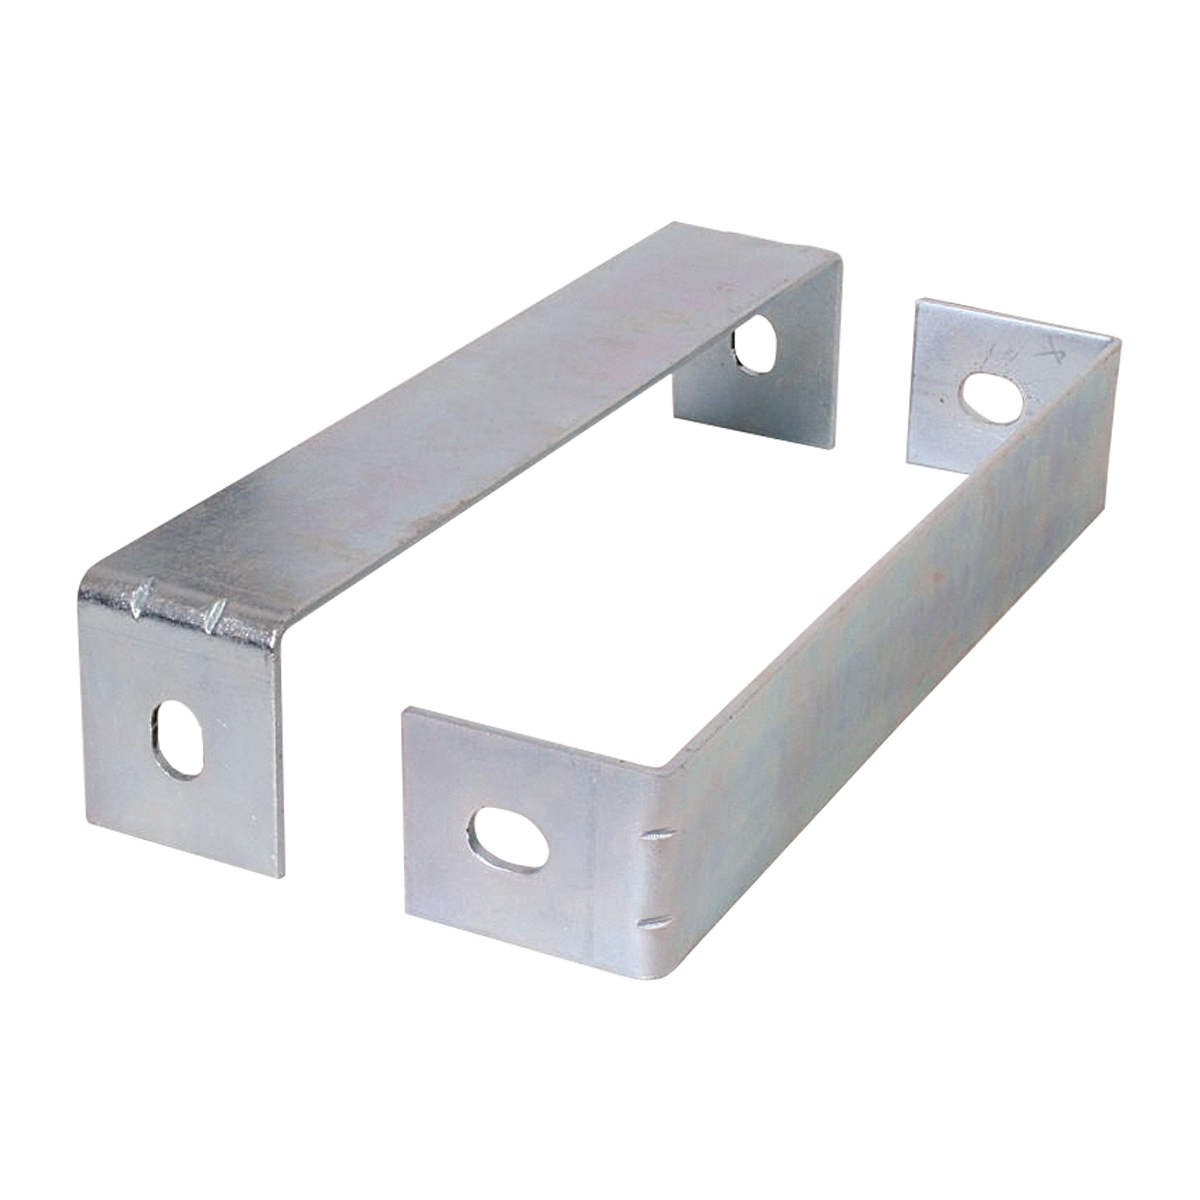 #91639 - Stainless Steel Panel Only - Brackets